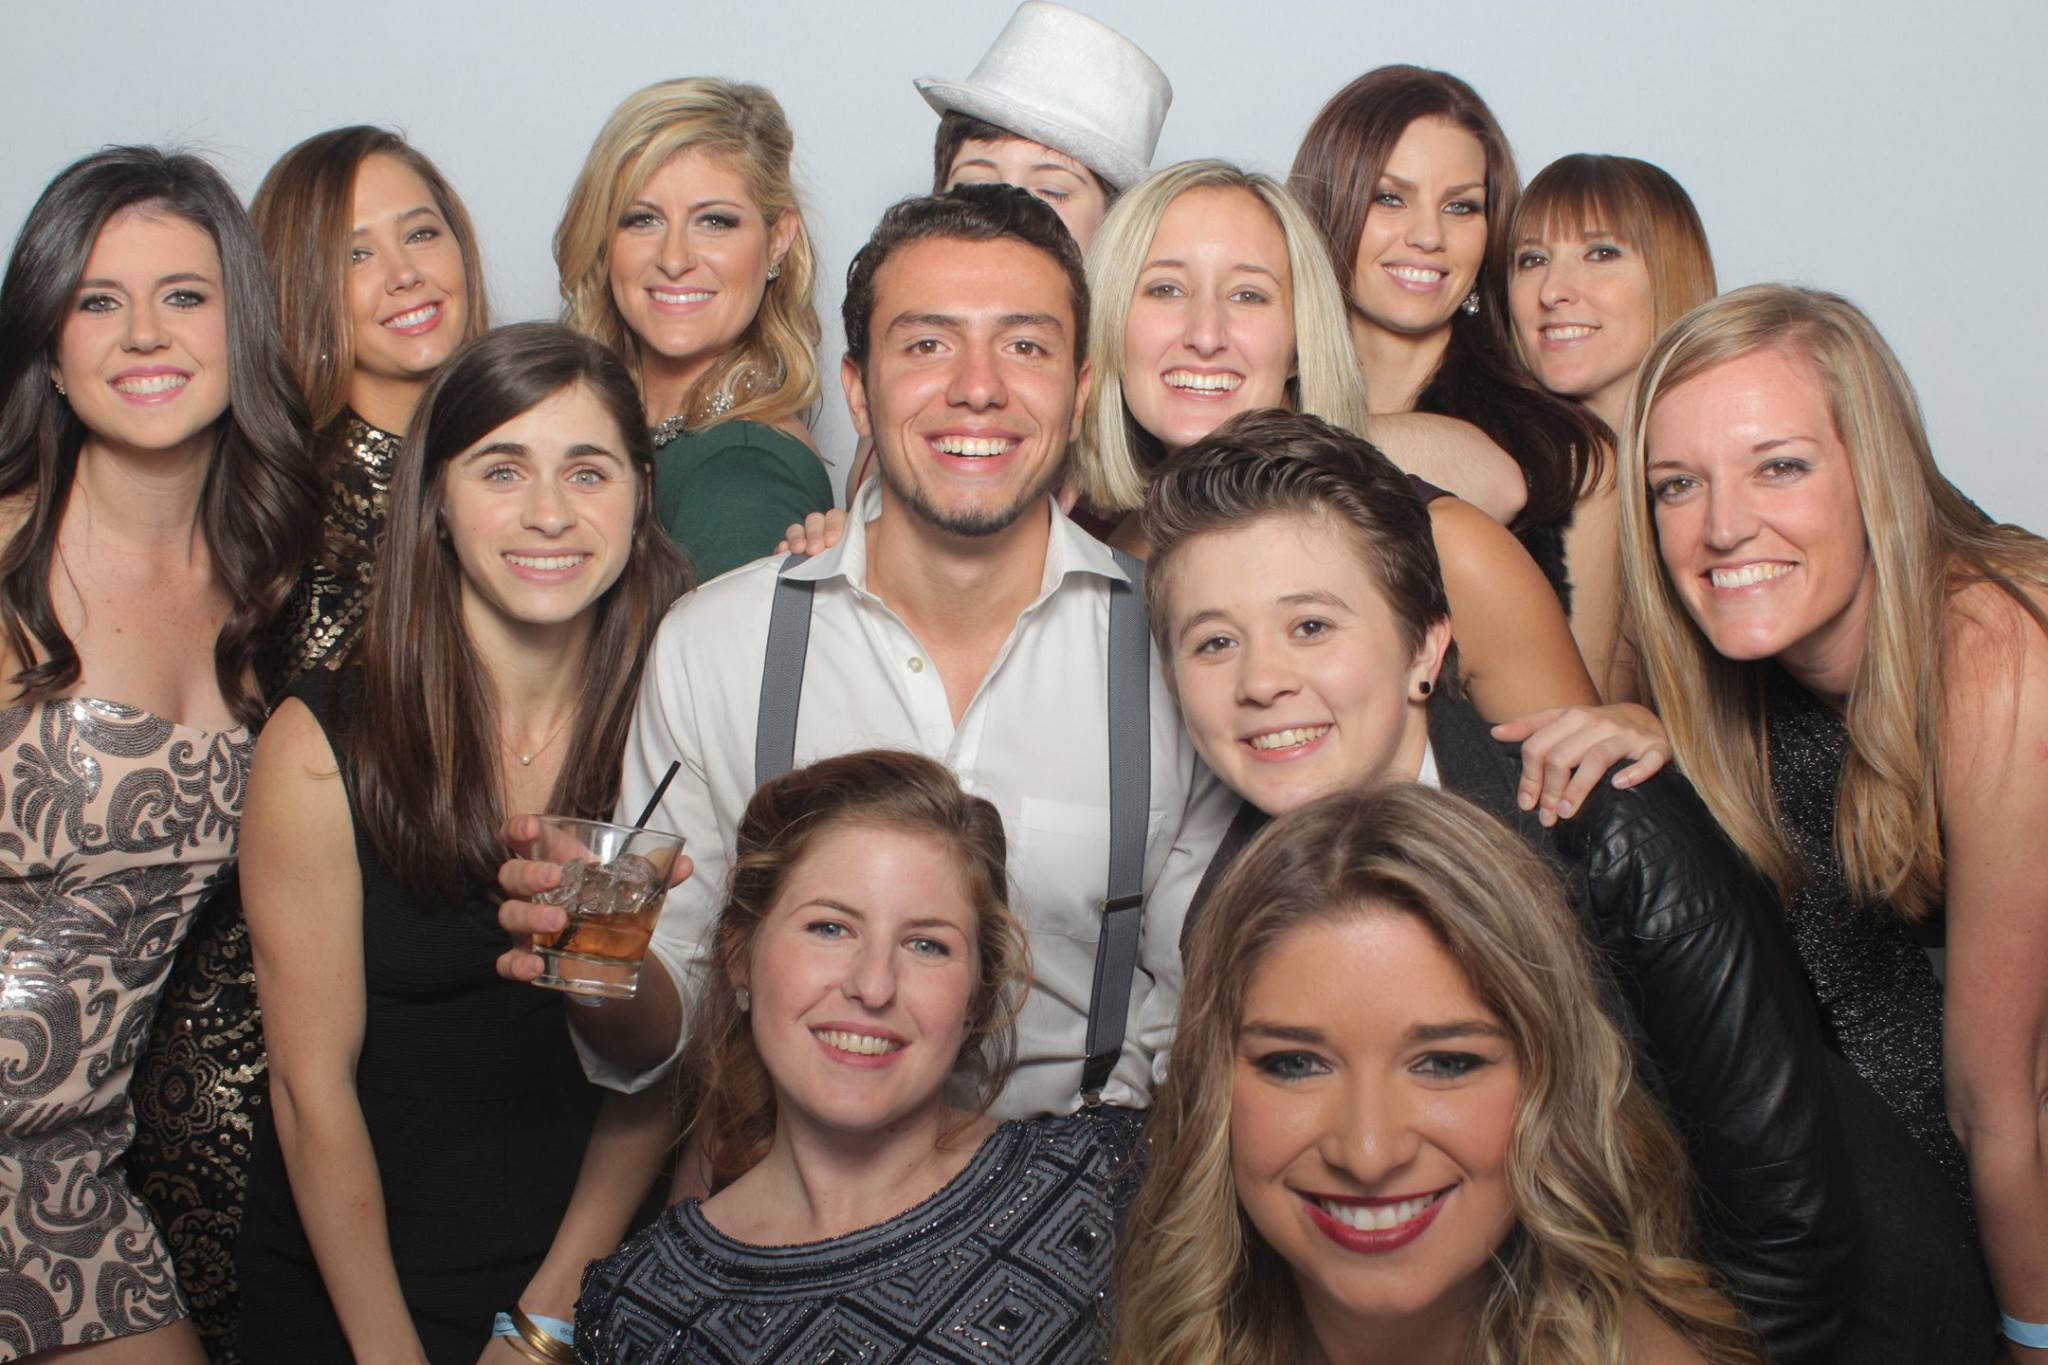 marketing team photo from holiday party